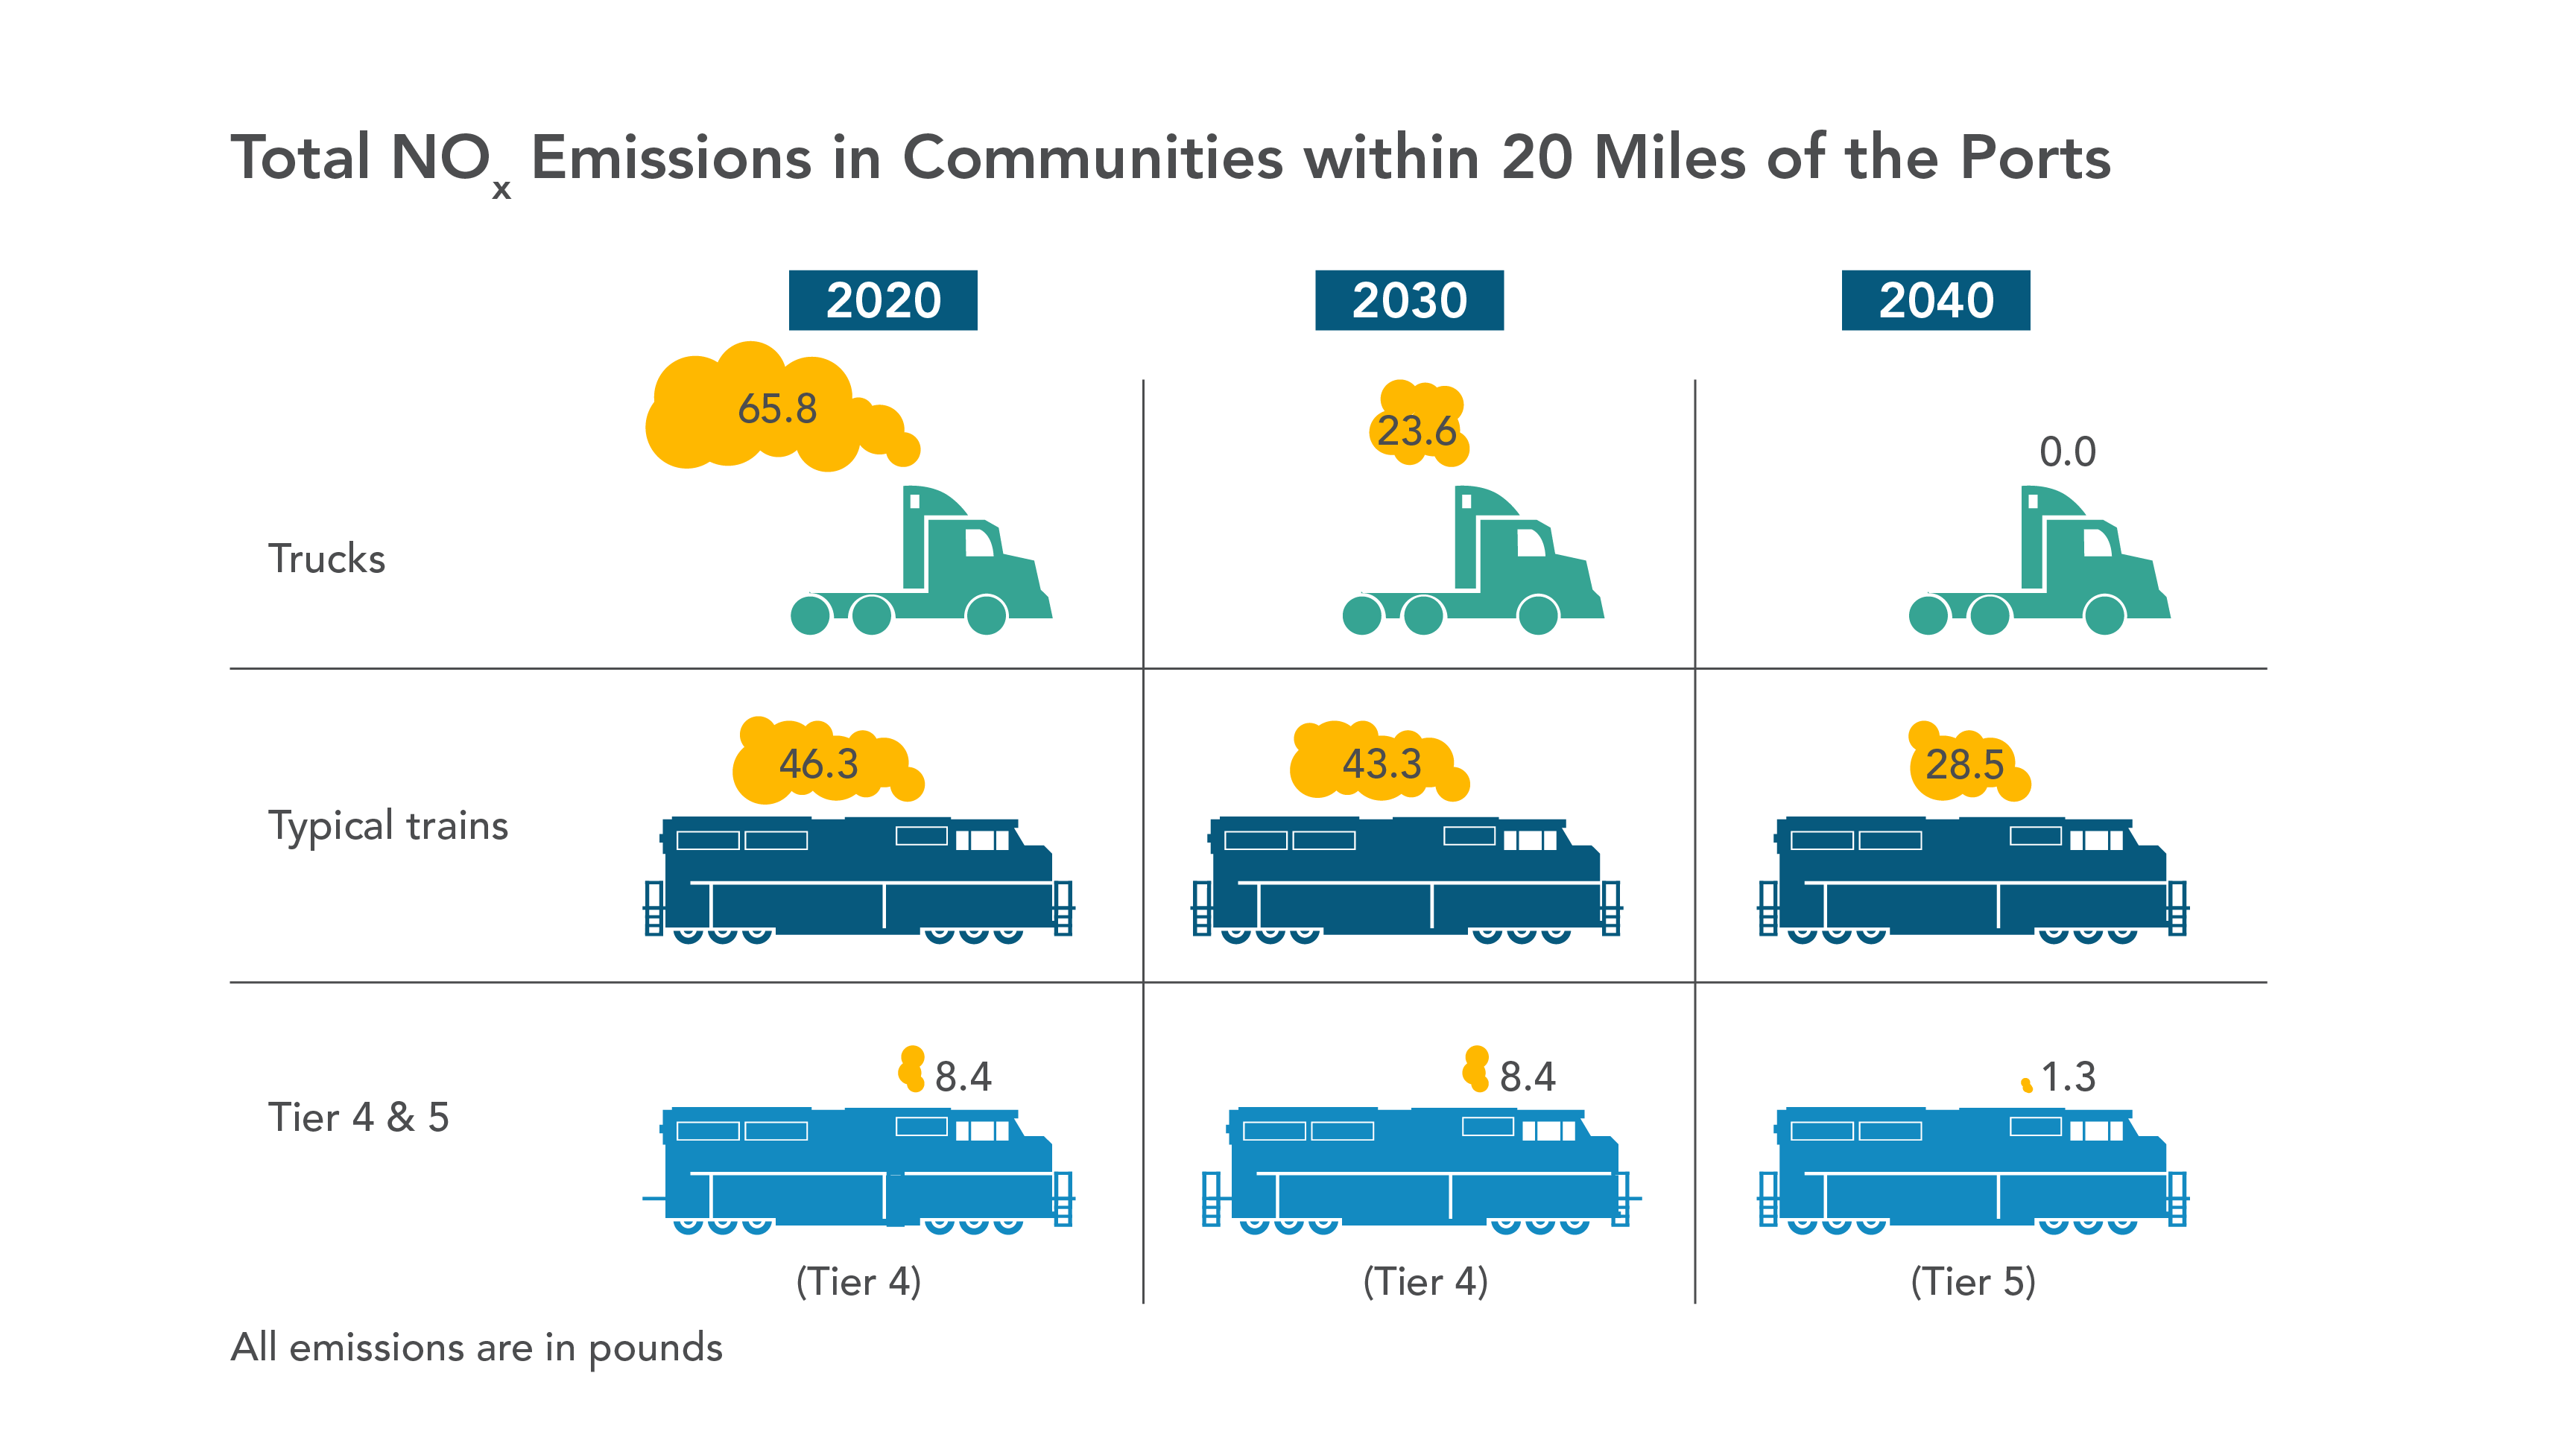 Comparison of truck and train Nox emissions in communities within 20 miles of the ports.  Includes tier 4 and 5 locomotives, which are cleaner than trucks in 2020 and 2030.